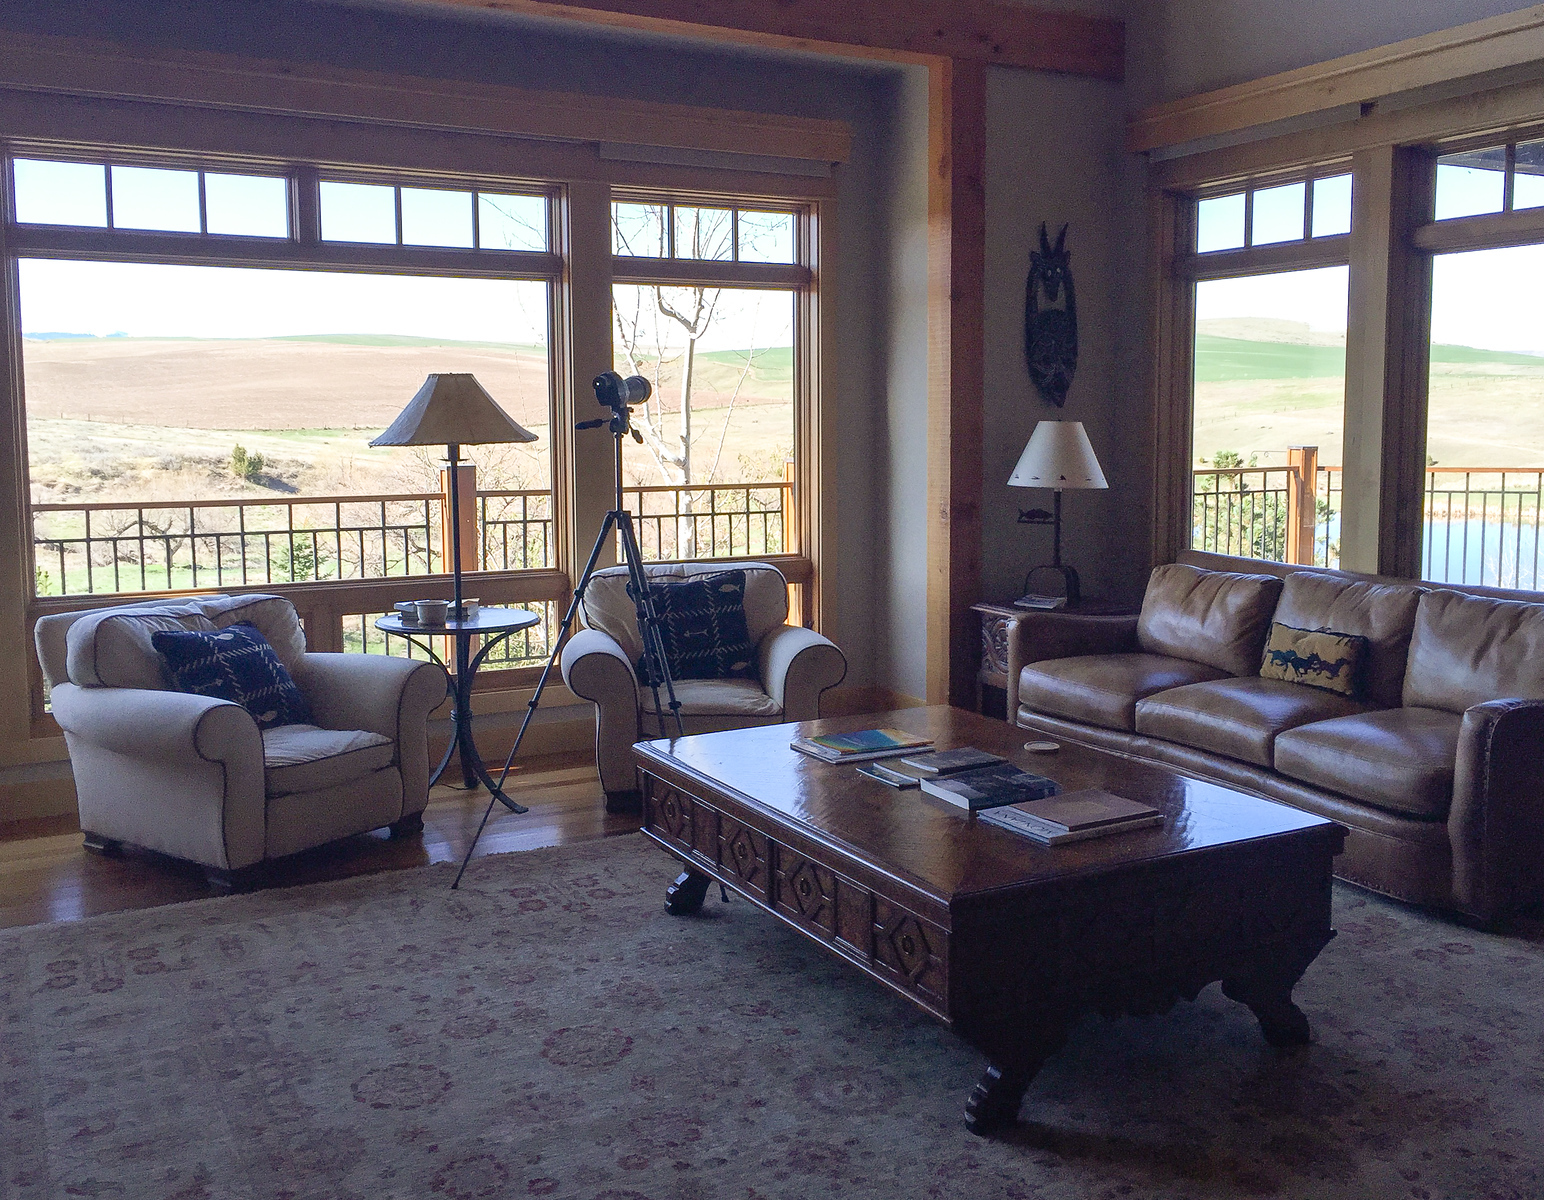 Read a book or snuggle up on the couch in the great room of Grey Cliffs Ranch in southwestern Montana.